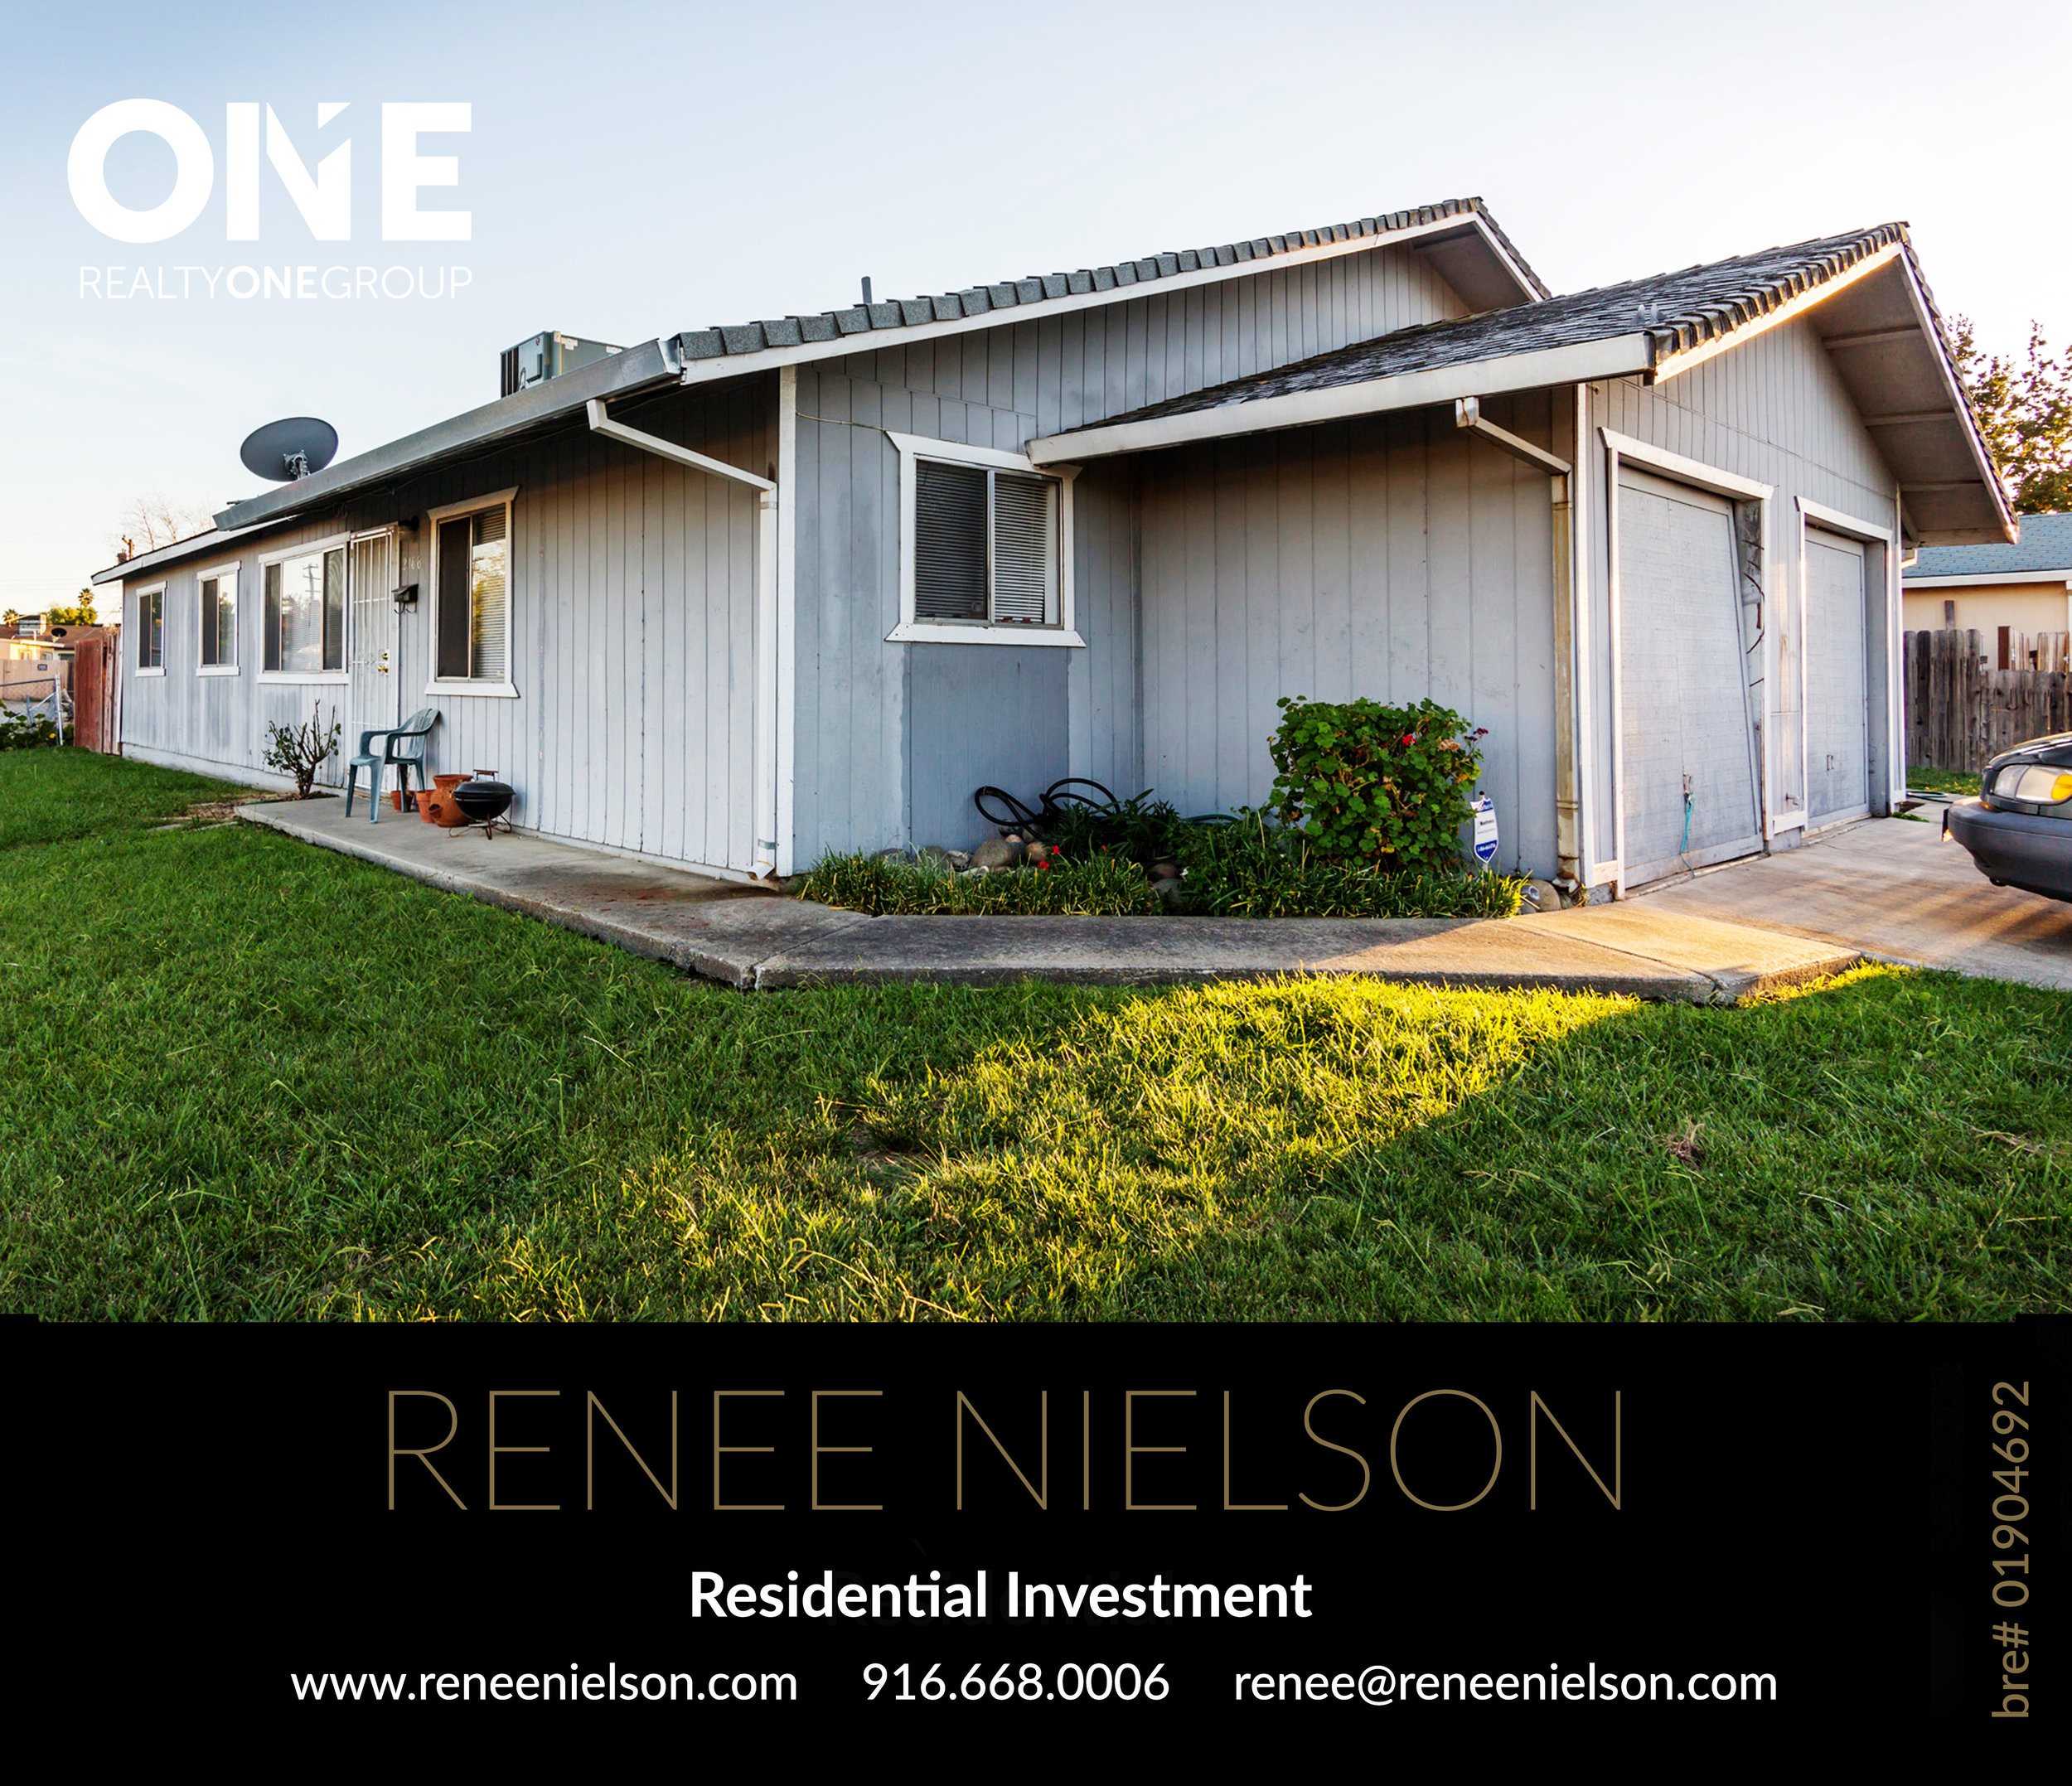 Co-Brokered by Renee Nielson, Realty ONE Group and Broker, Tim Manke.